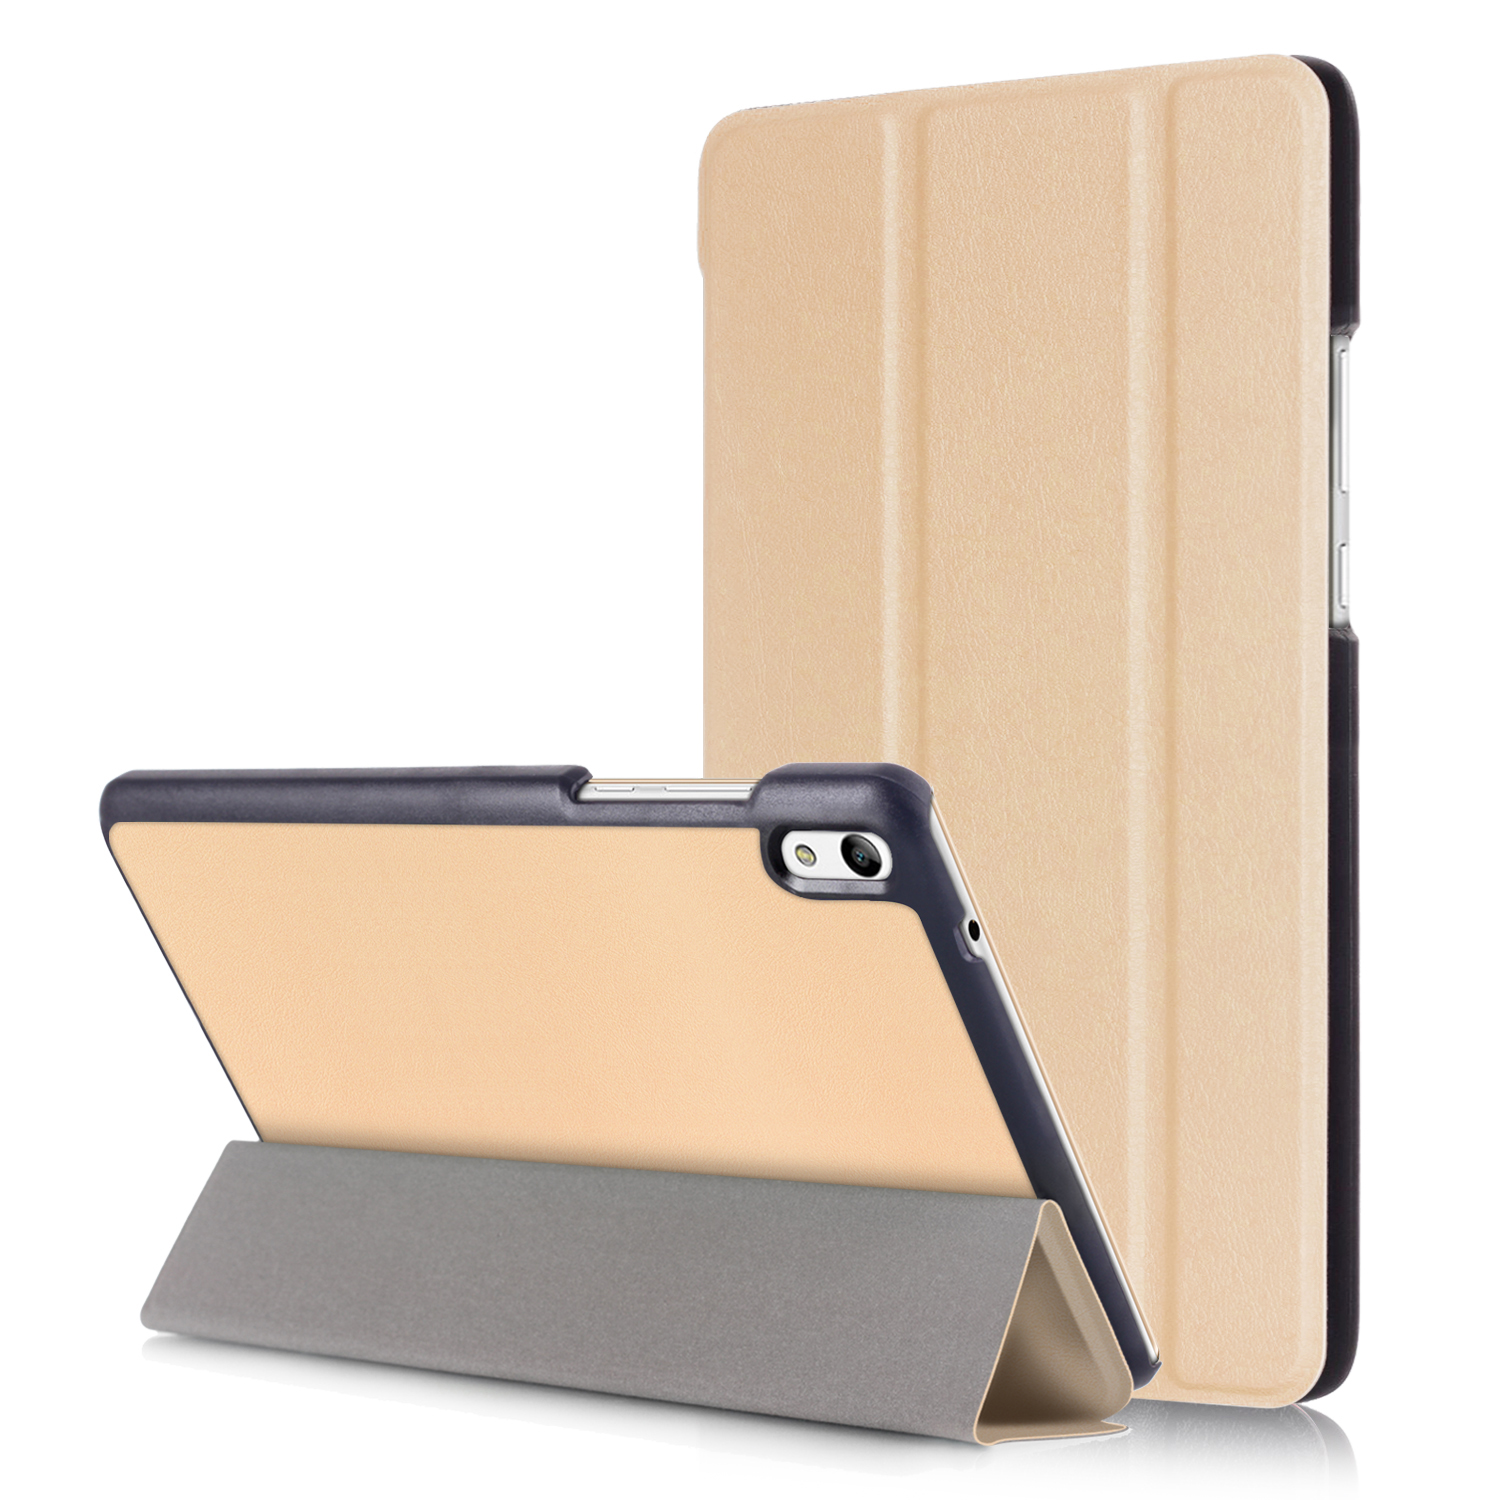 Stand Flip Cases Protective Cover for Huawei Honor Tab 2 JDN-AL00/W09 8.0 inch Android tablet case+Screen Protector Film+Stylus ultra thin smart flip pu leather cover for lenovo tab 2 a10 30 70f x30f x30m 10 1 tablet case screen protector stylus pen